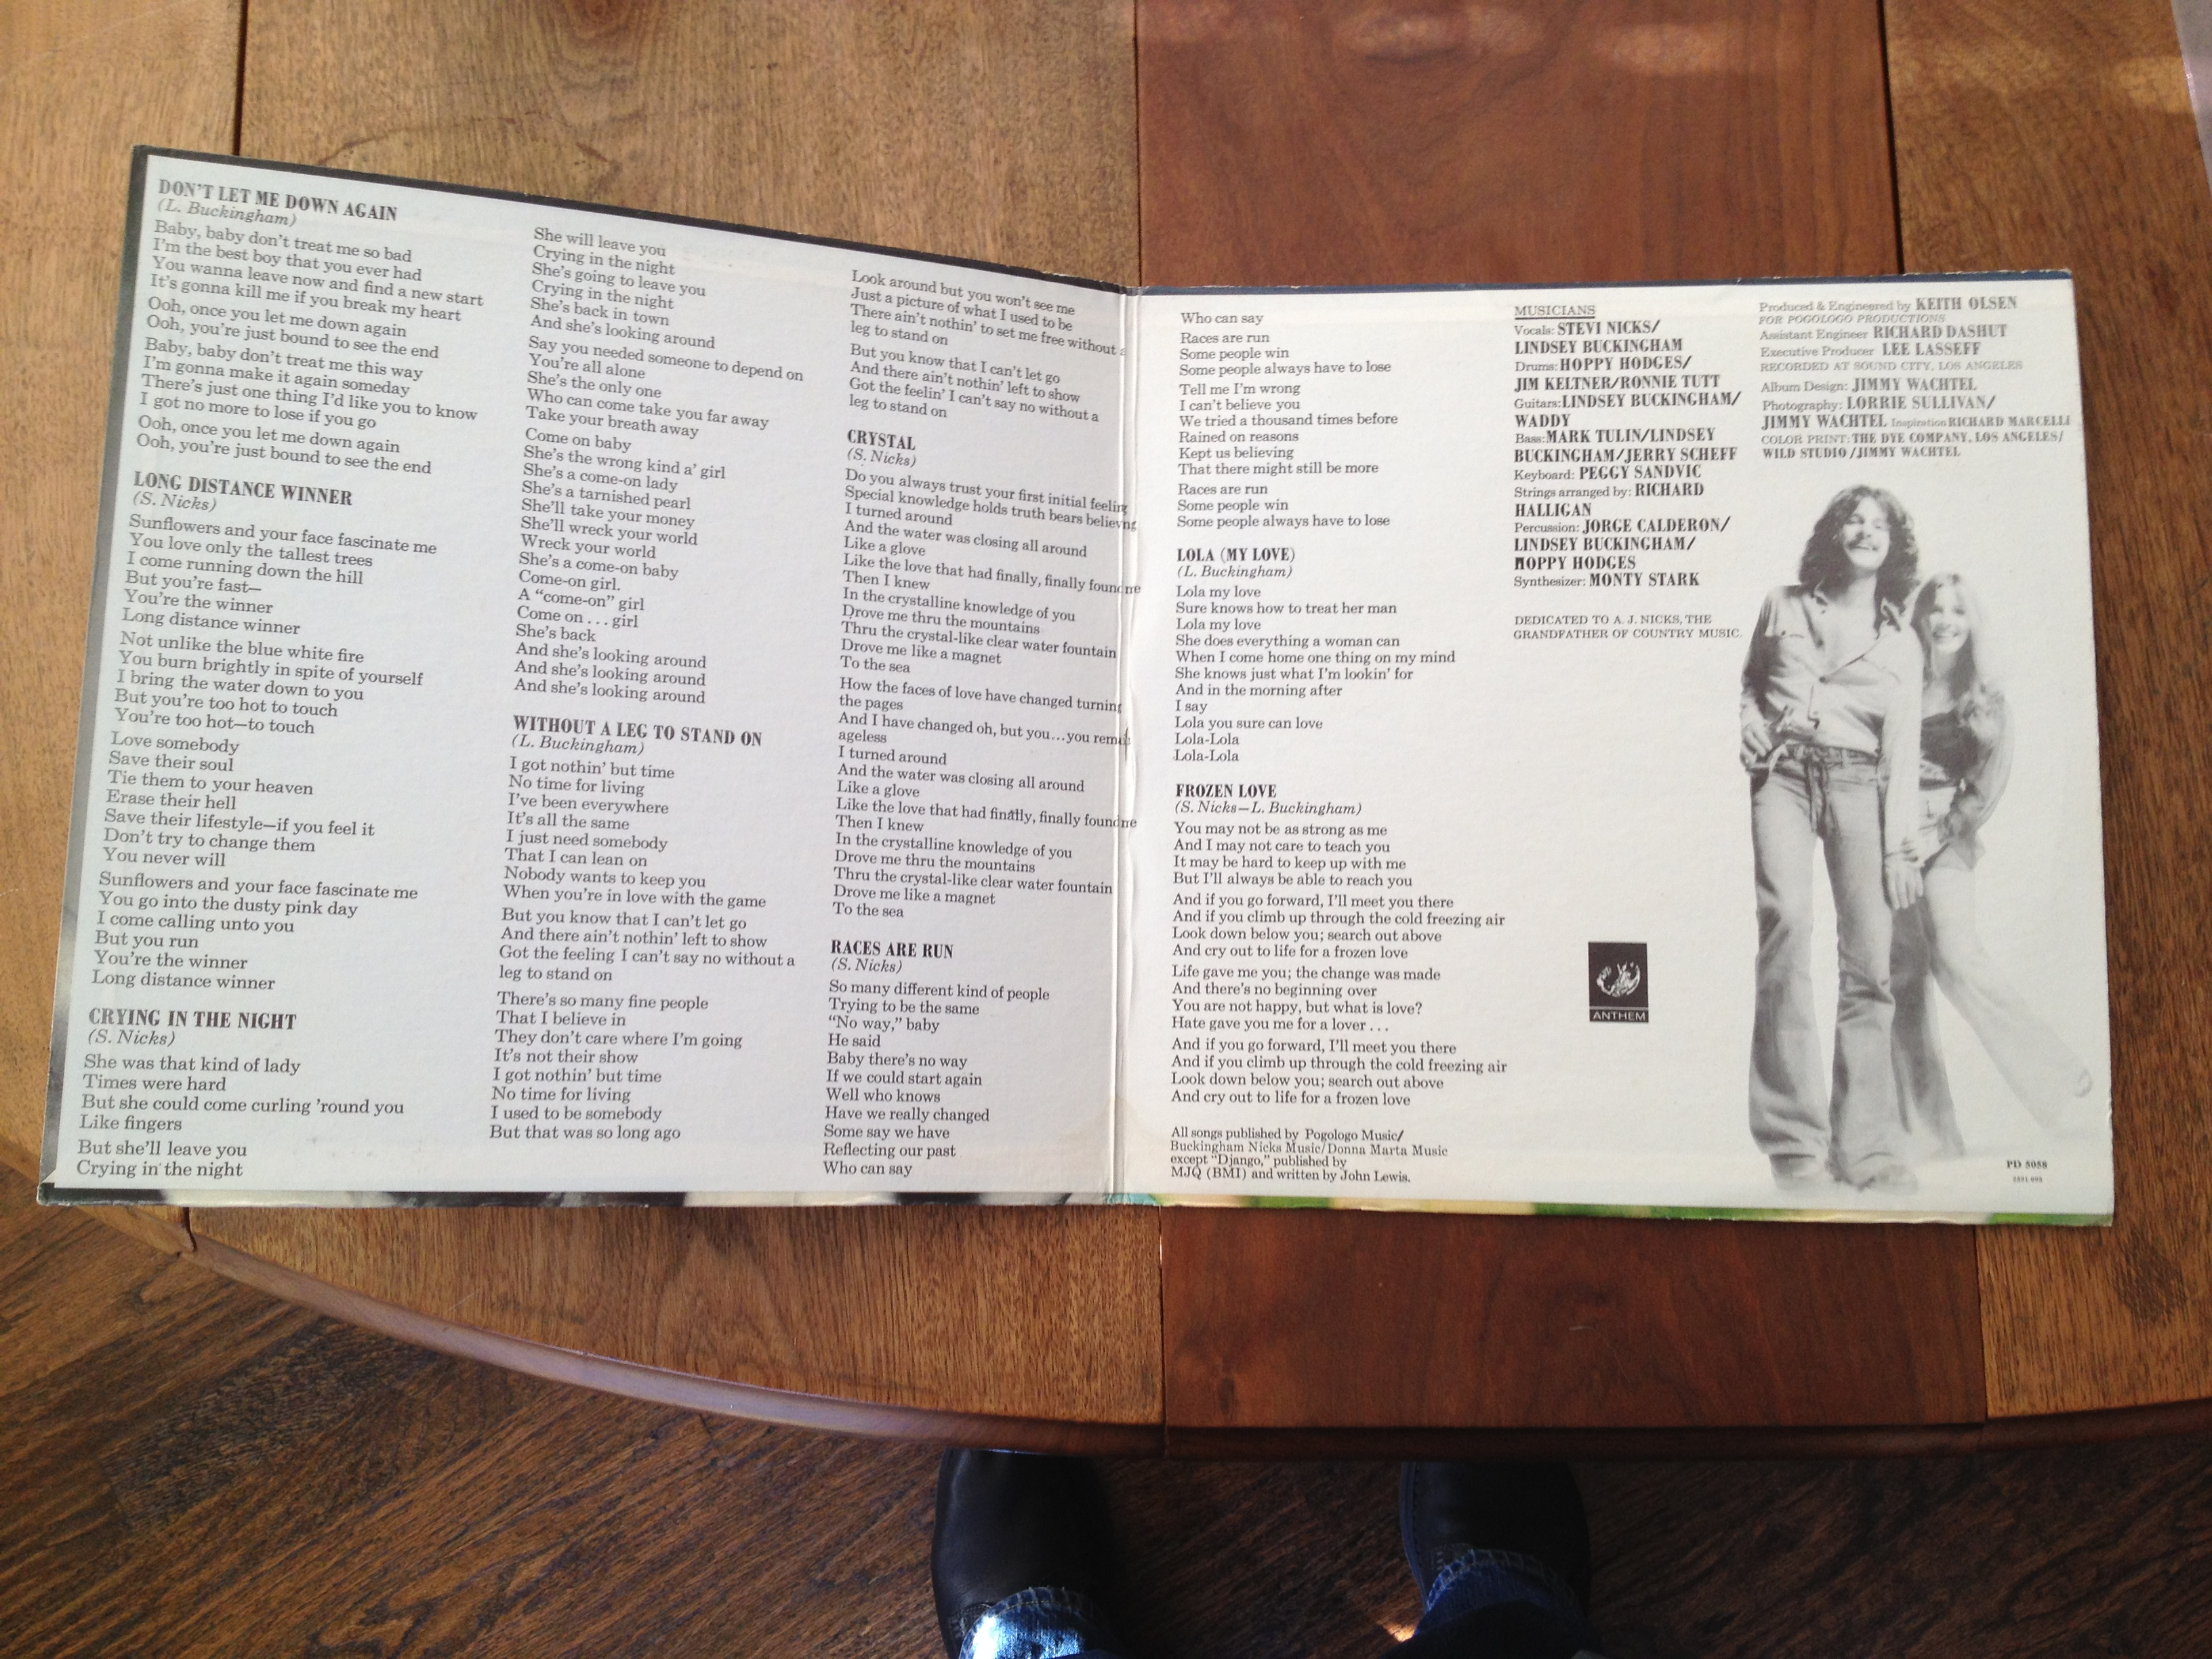 Gate-fold showing Lyrics and album credits for Buckingham Nicks